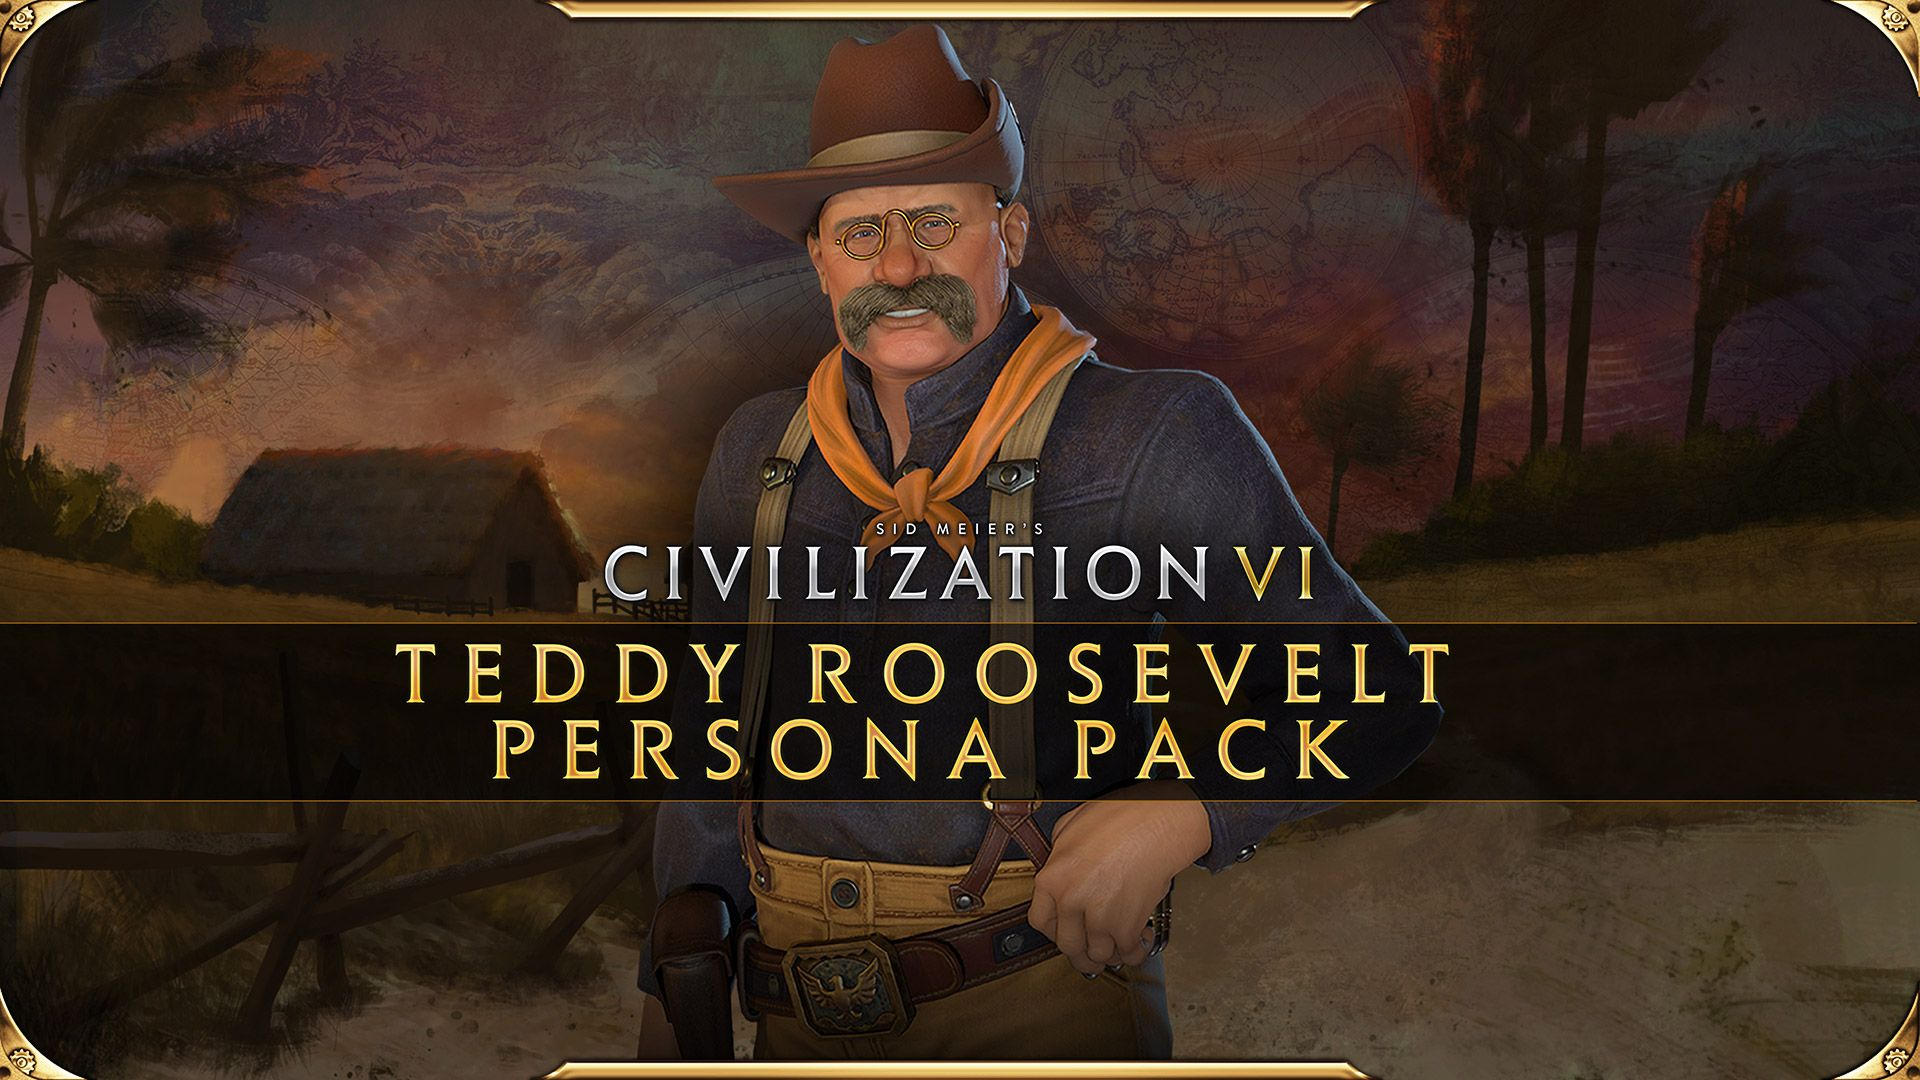 Teddy Roosevelt Persona Pack